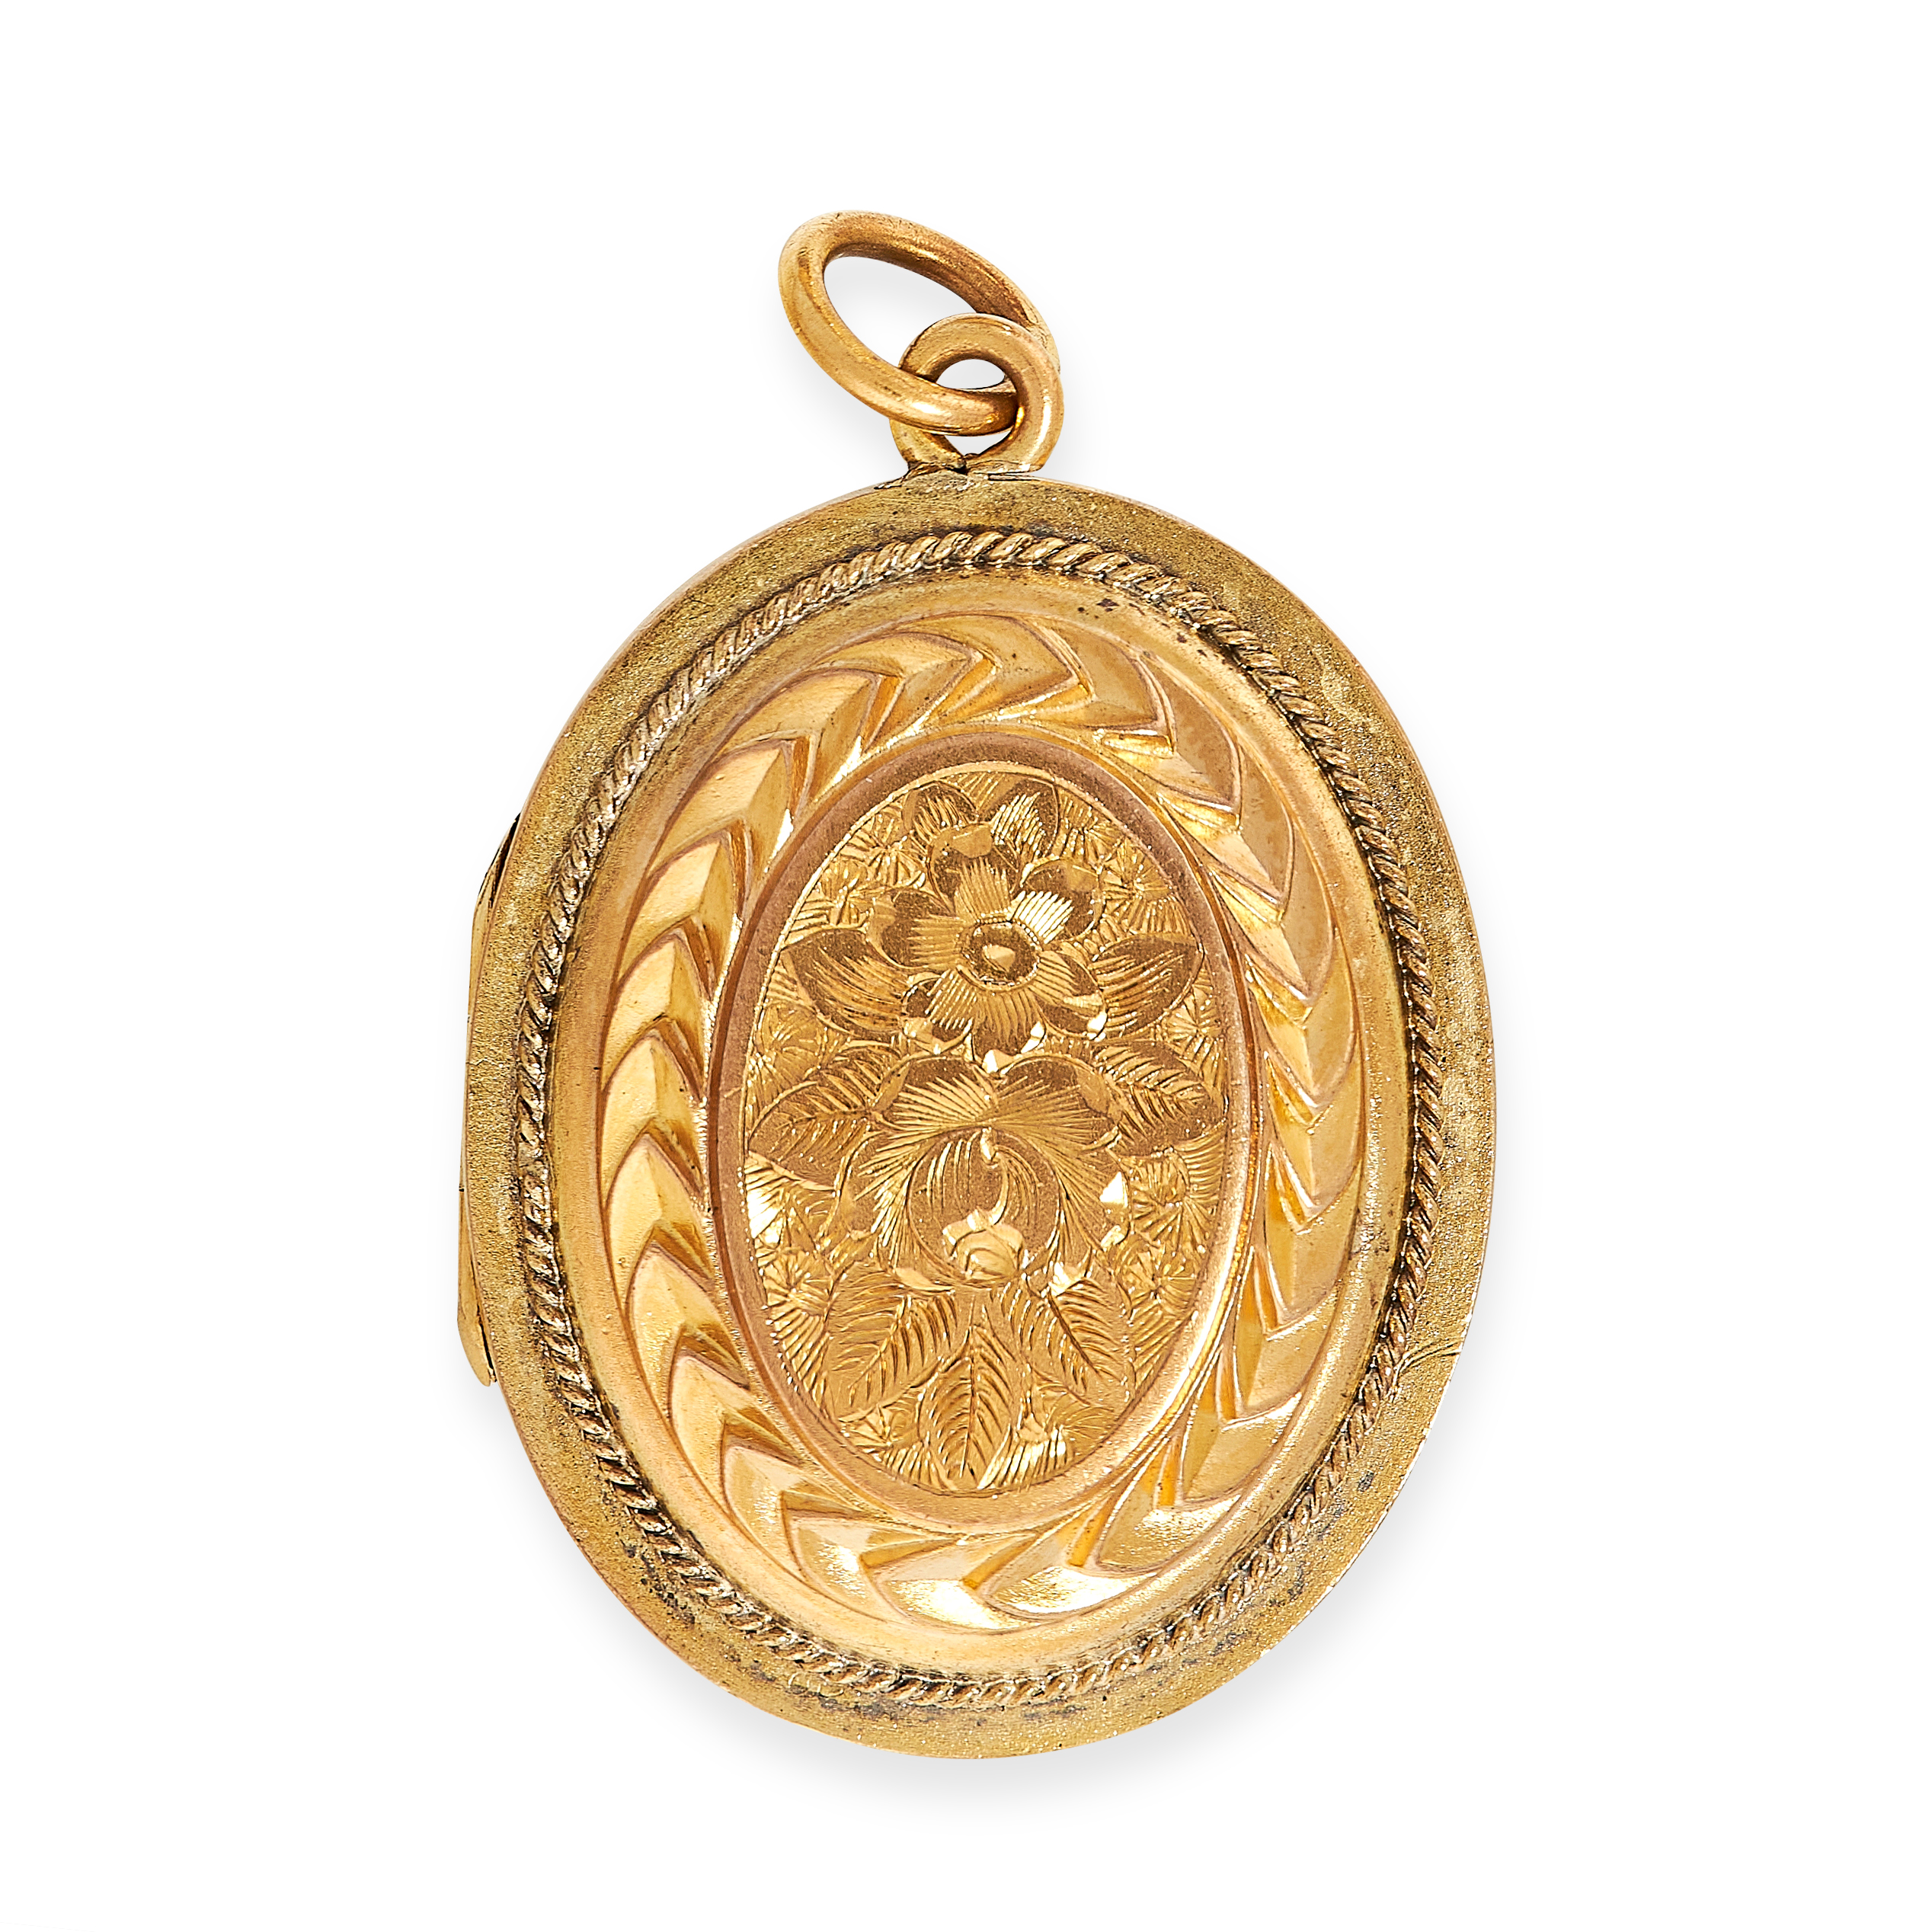 ANTIQUE MOURNING LOCKET PENDANT, 19TH CENTURY the oval face is decorated in engraved foliate